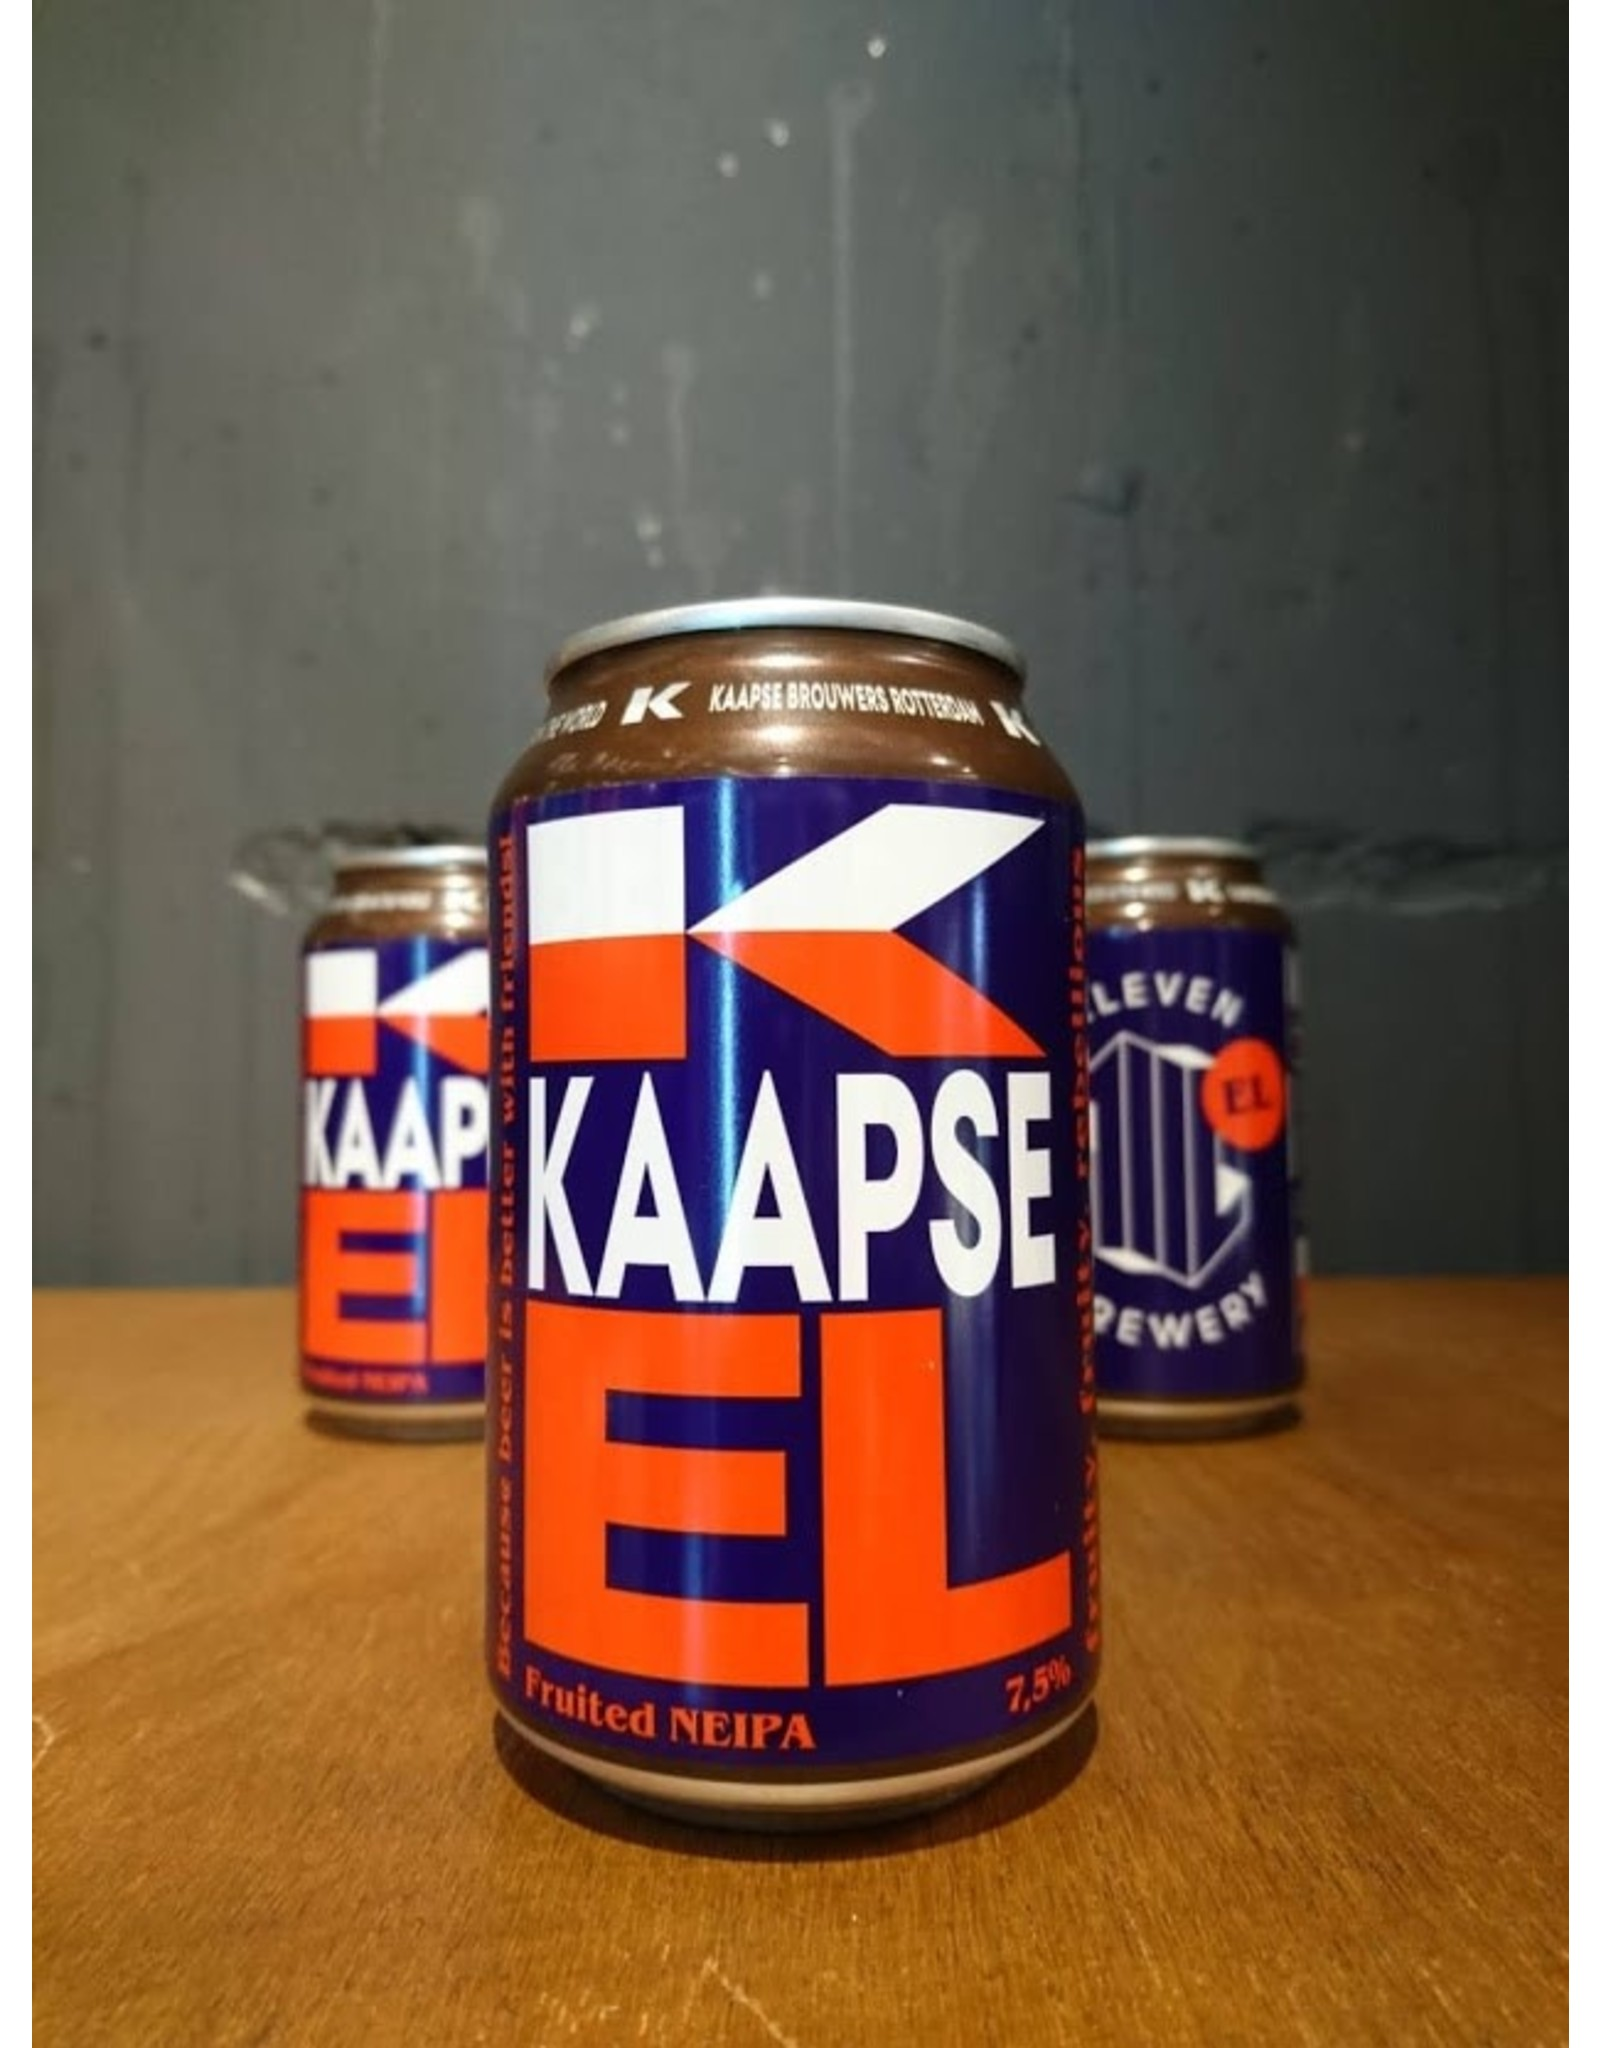 Eleven Brewery Eleven X Kaapse Brouwers: Kaapse EL